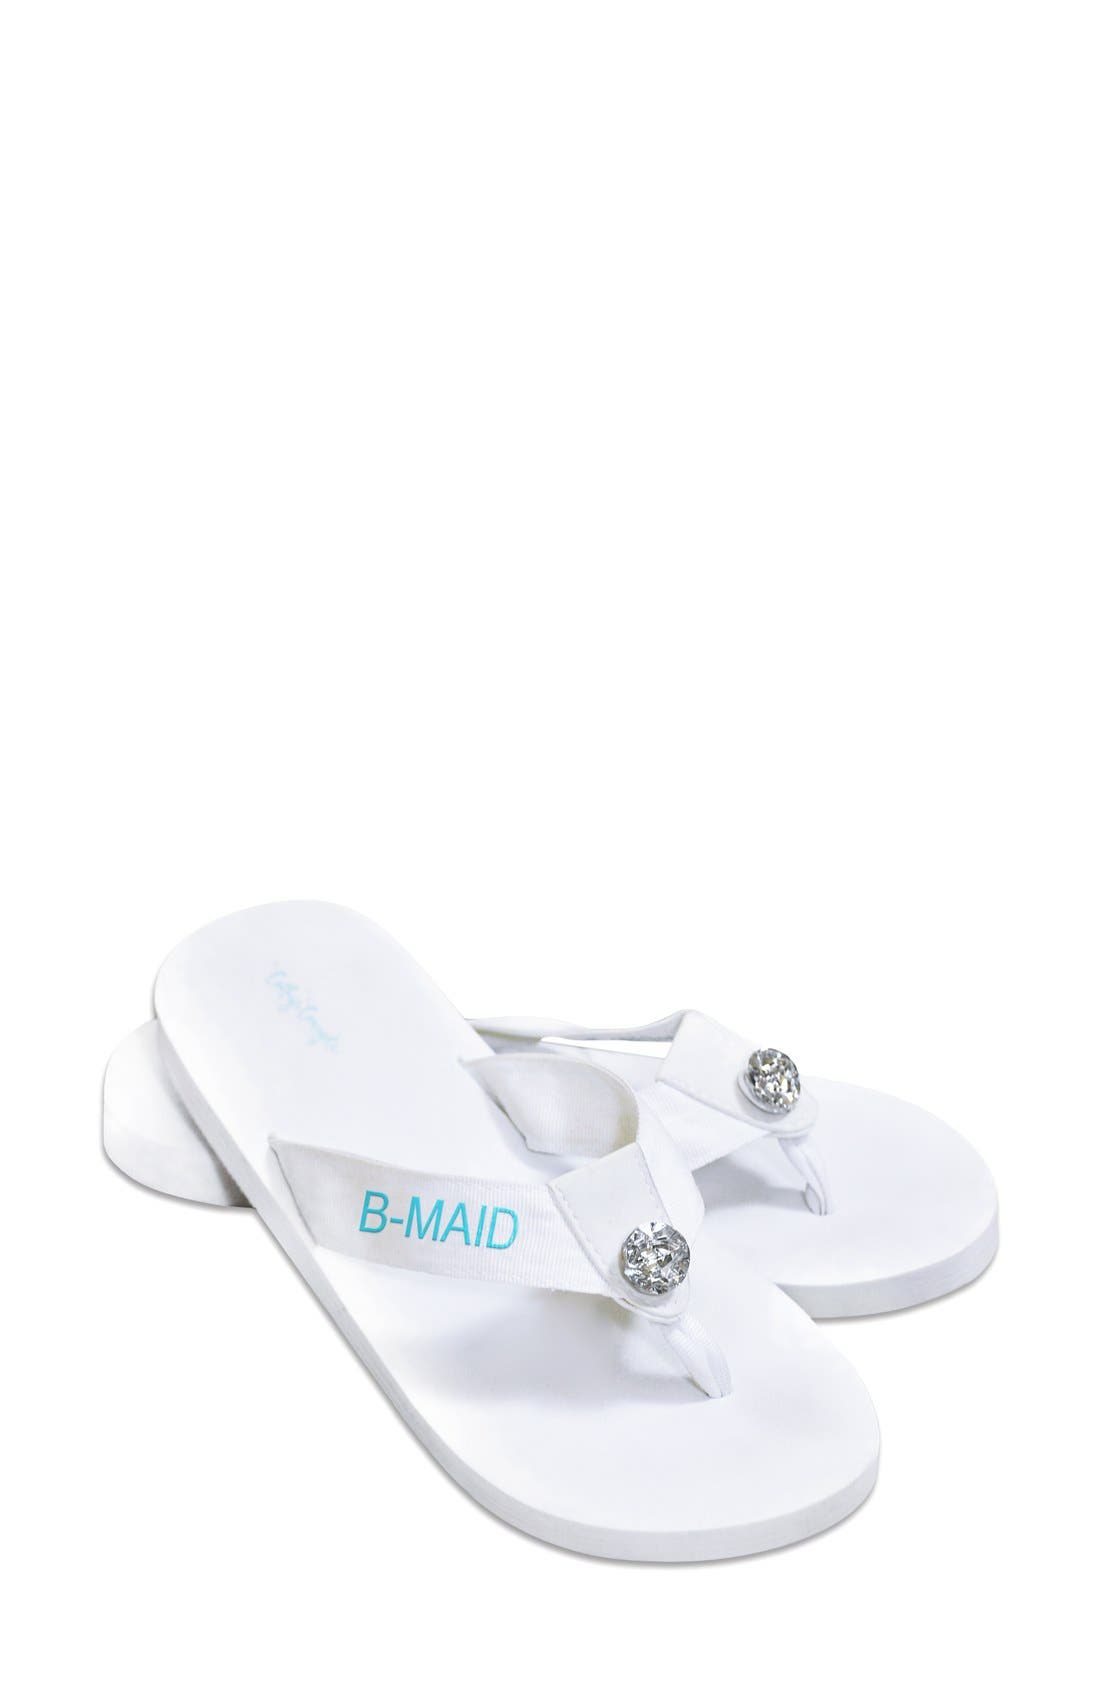 Alternate Image 1 Selected - Cathy's Concepts 'Bridesmaid' Personalized Flip Flops